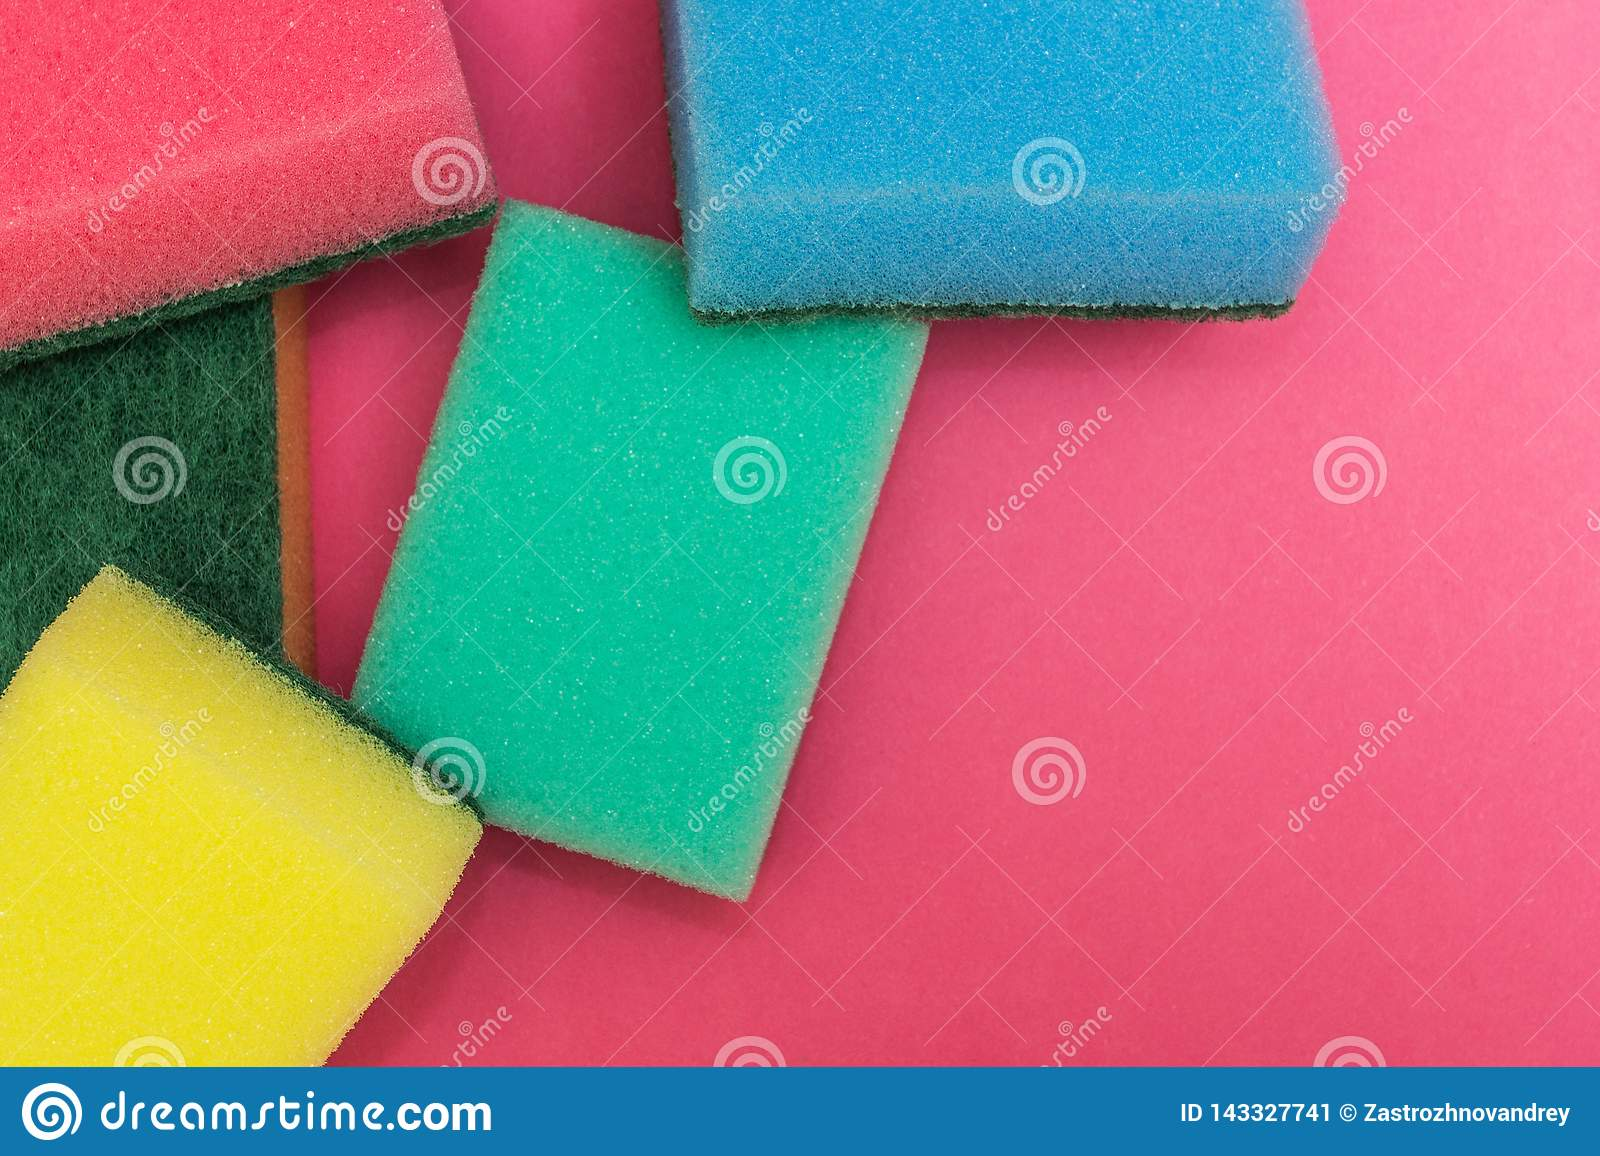 Multicolored sponges on a pink background